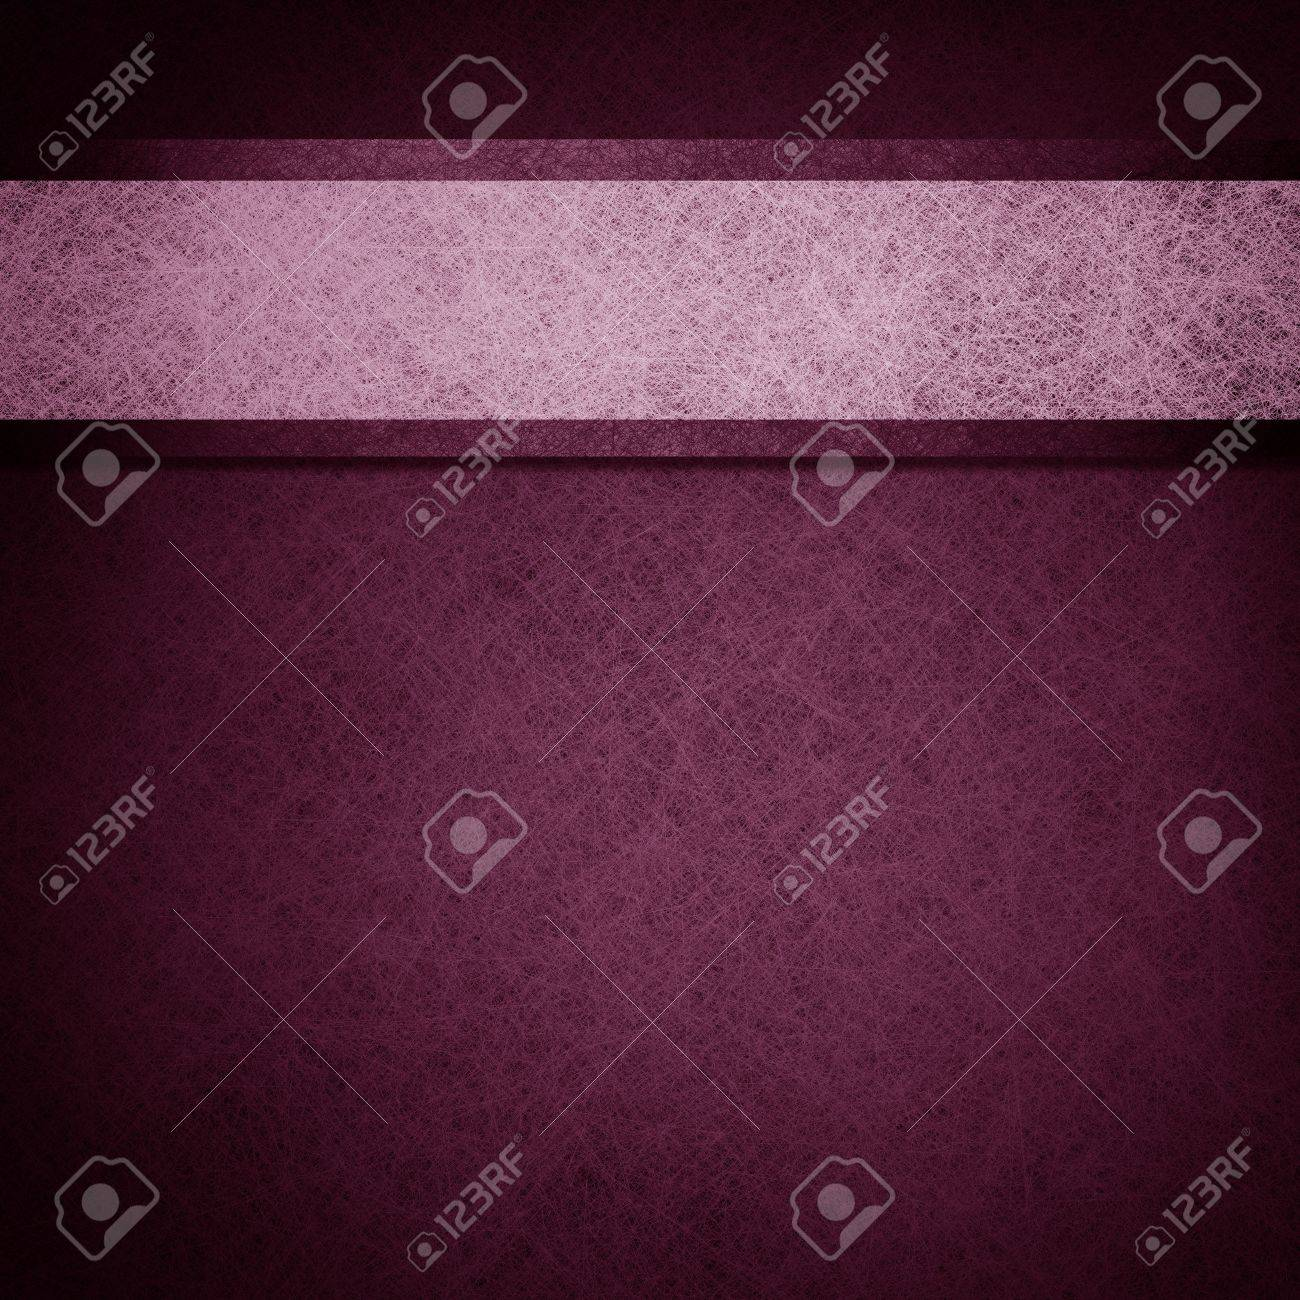 purple background layout design illustration with parchment ribbon stripe and dark edges on border of paper Stock Illustration - 12624065